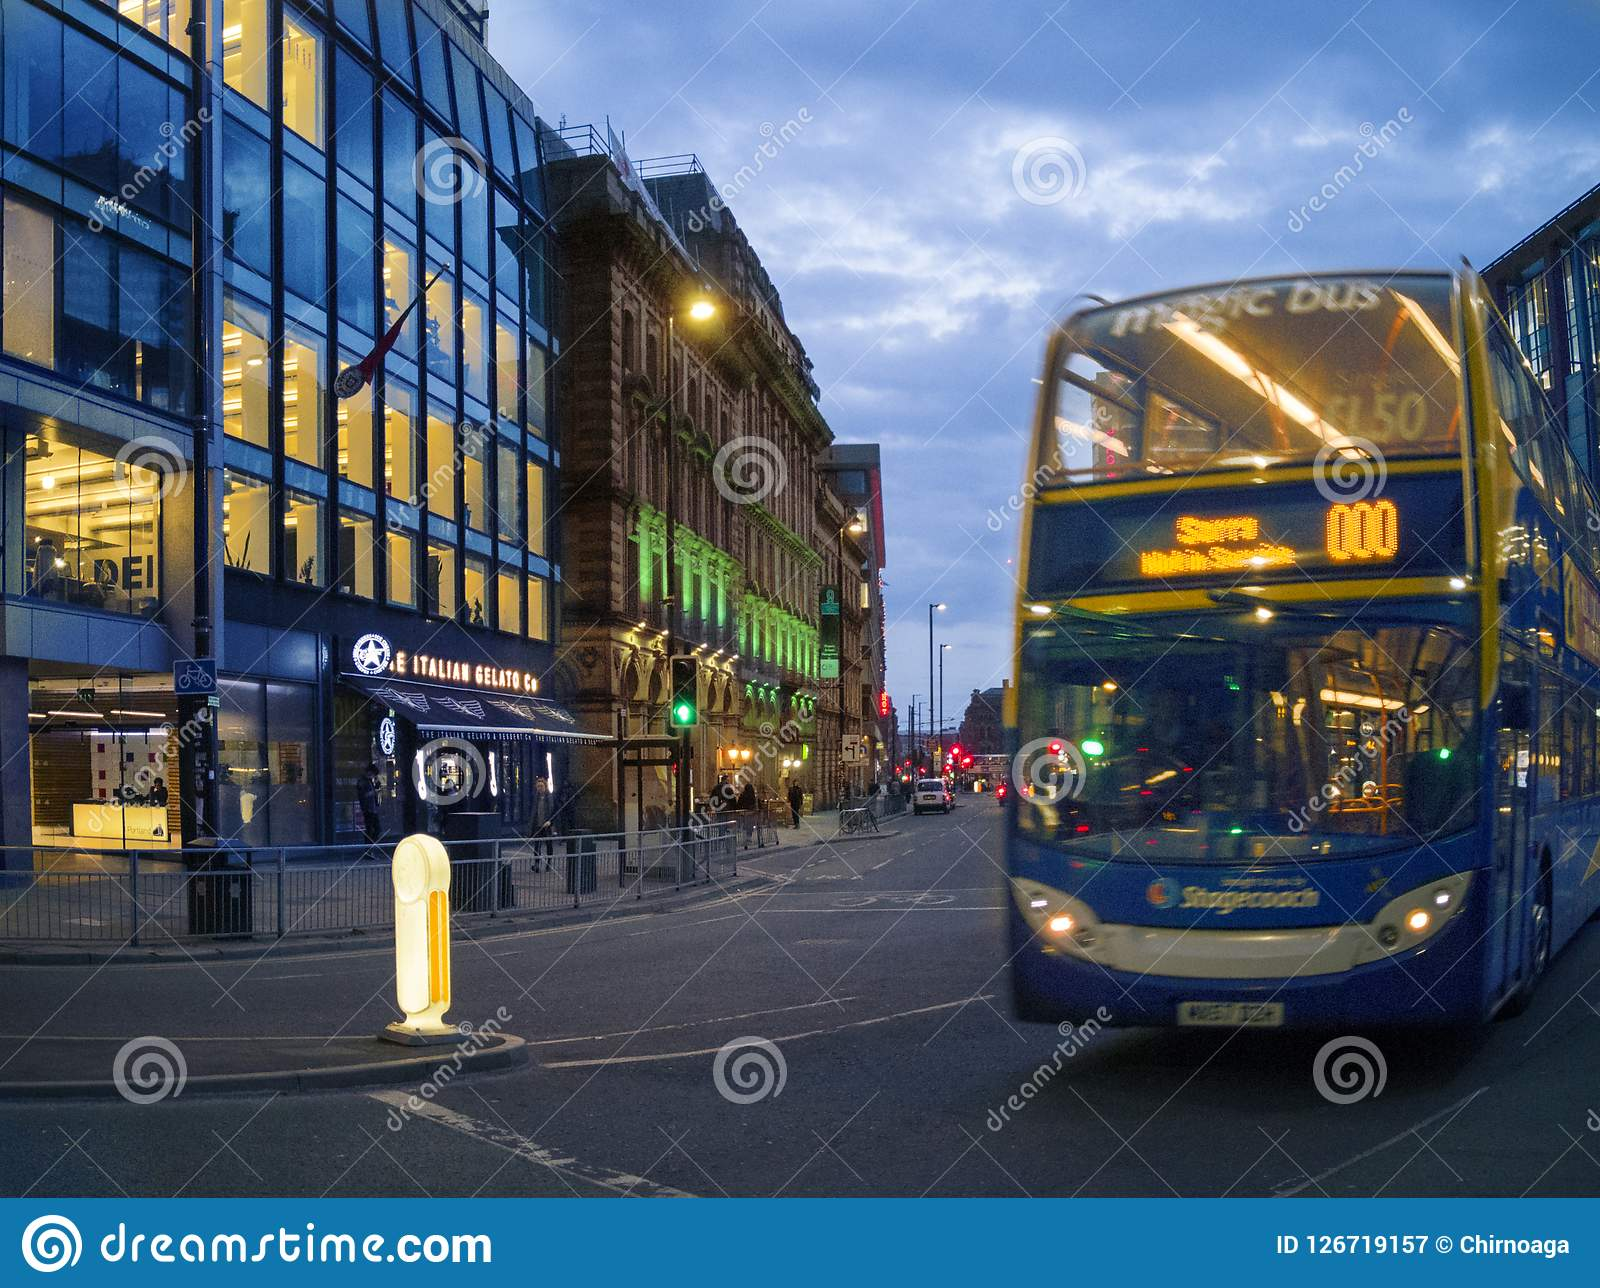 People ride JPT city bus in Manchester,